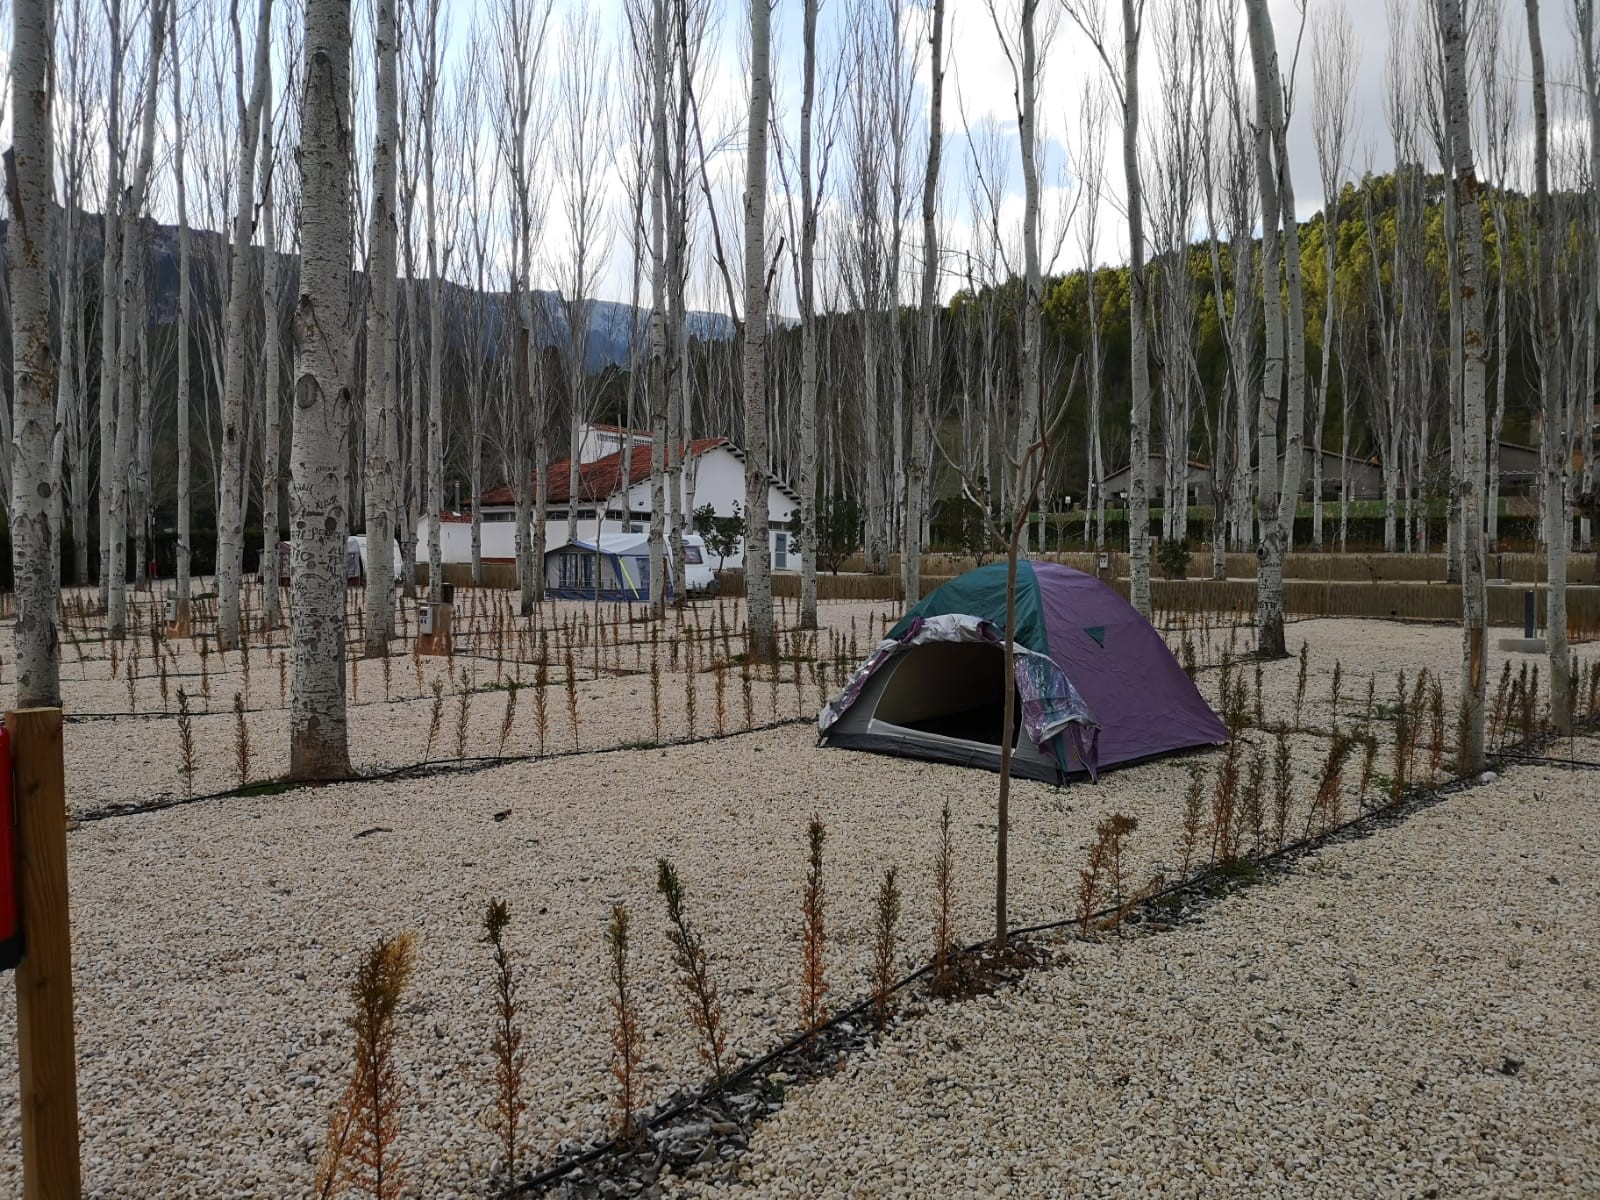 camping-rio-tus-parcela-eco-yeste-albacete-2